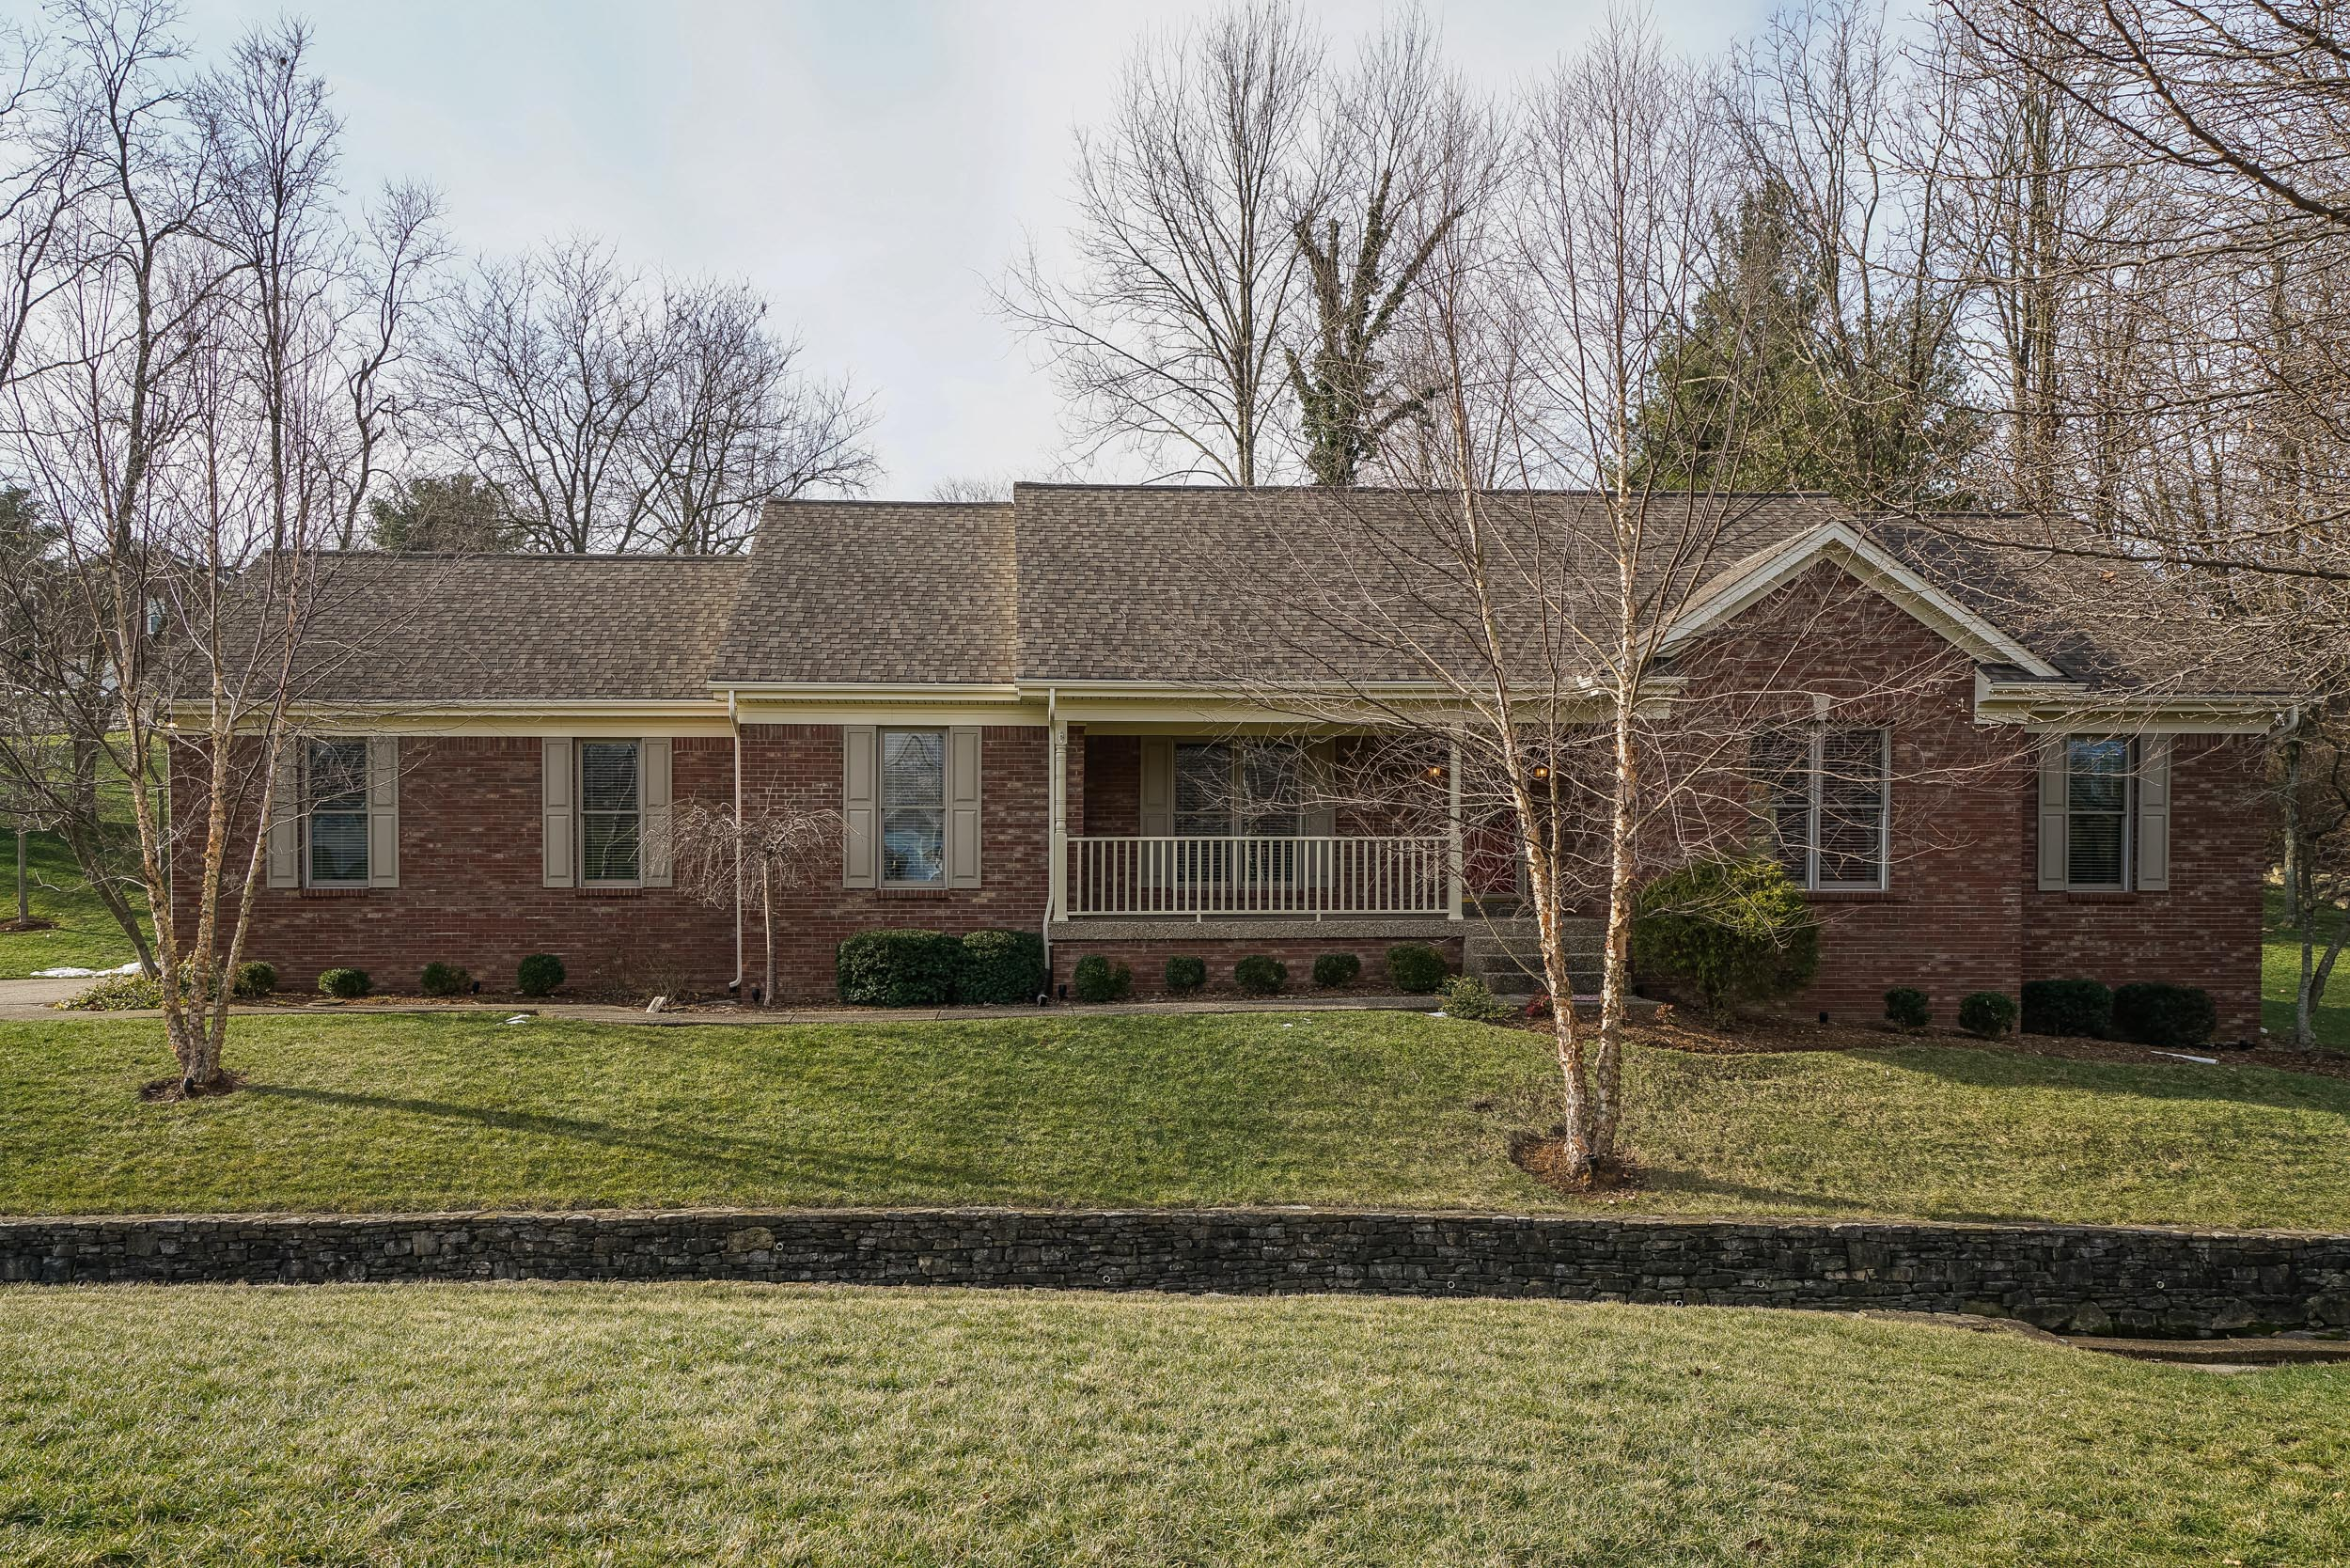 12414 Warner Dr, Goshen, Kentucky 40026